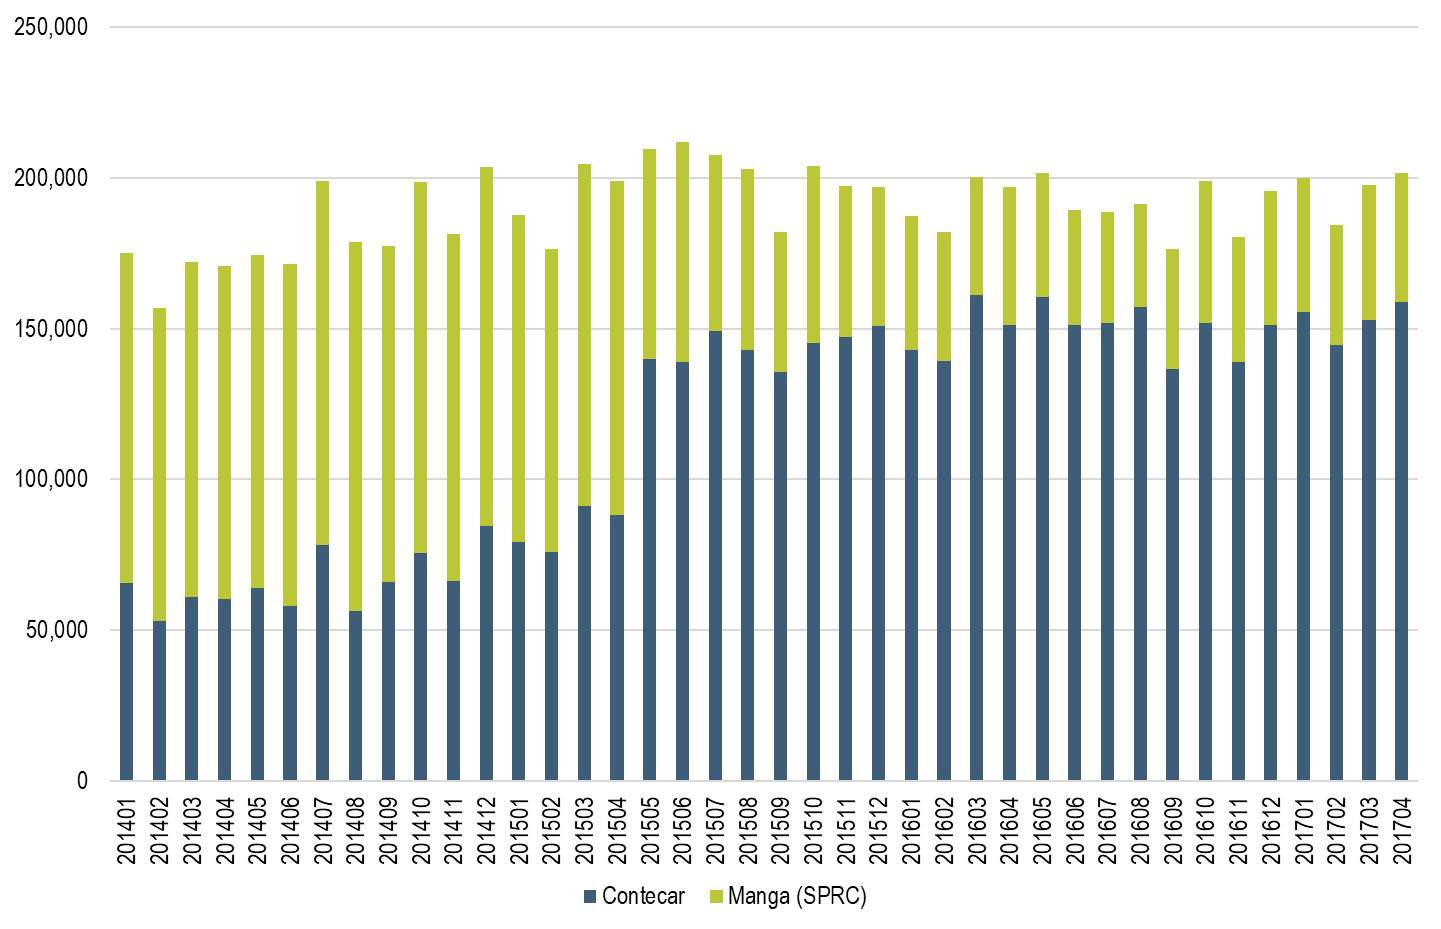 Figure 2-Monthly TEU at the Main Terminals of the Port of Cartagena, 2014-2017